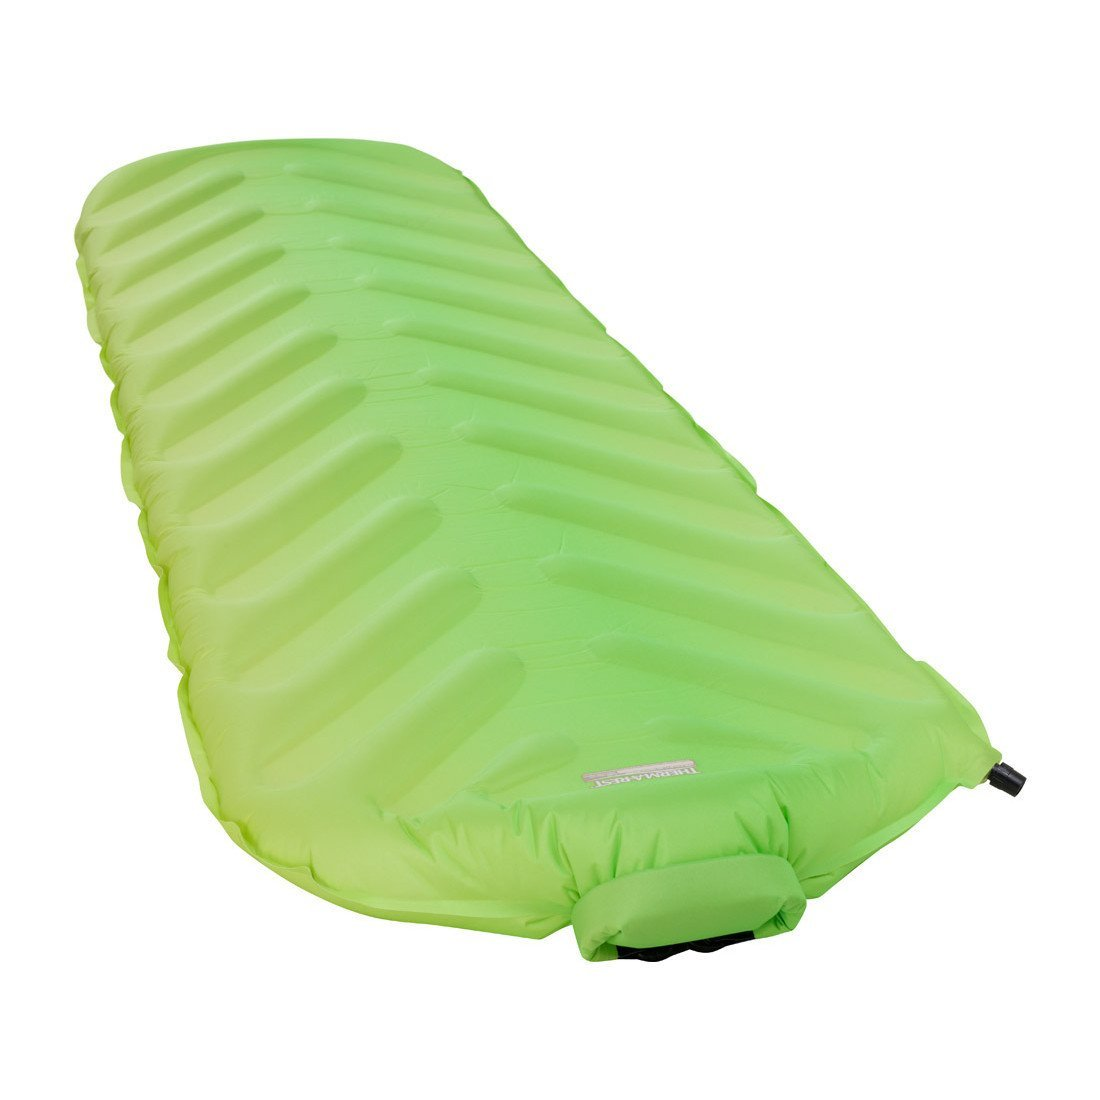 Thermarest Trail King SV Large camping mat, shown inflated and laid flat in green colour